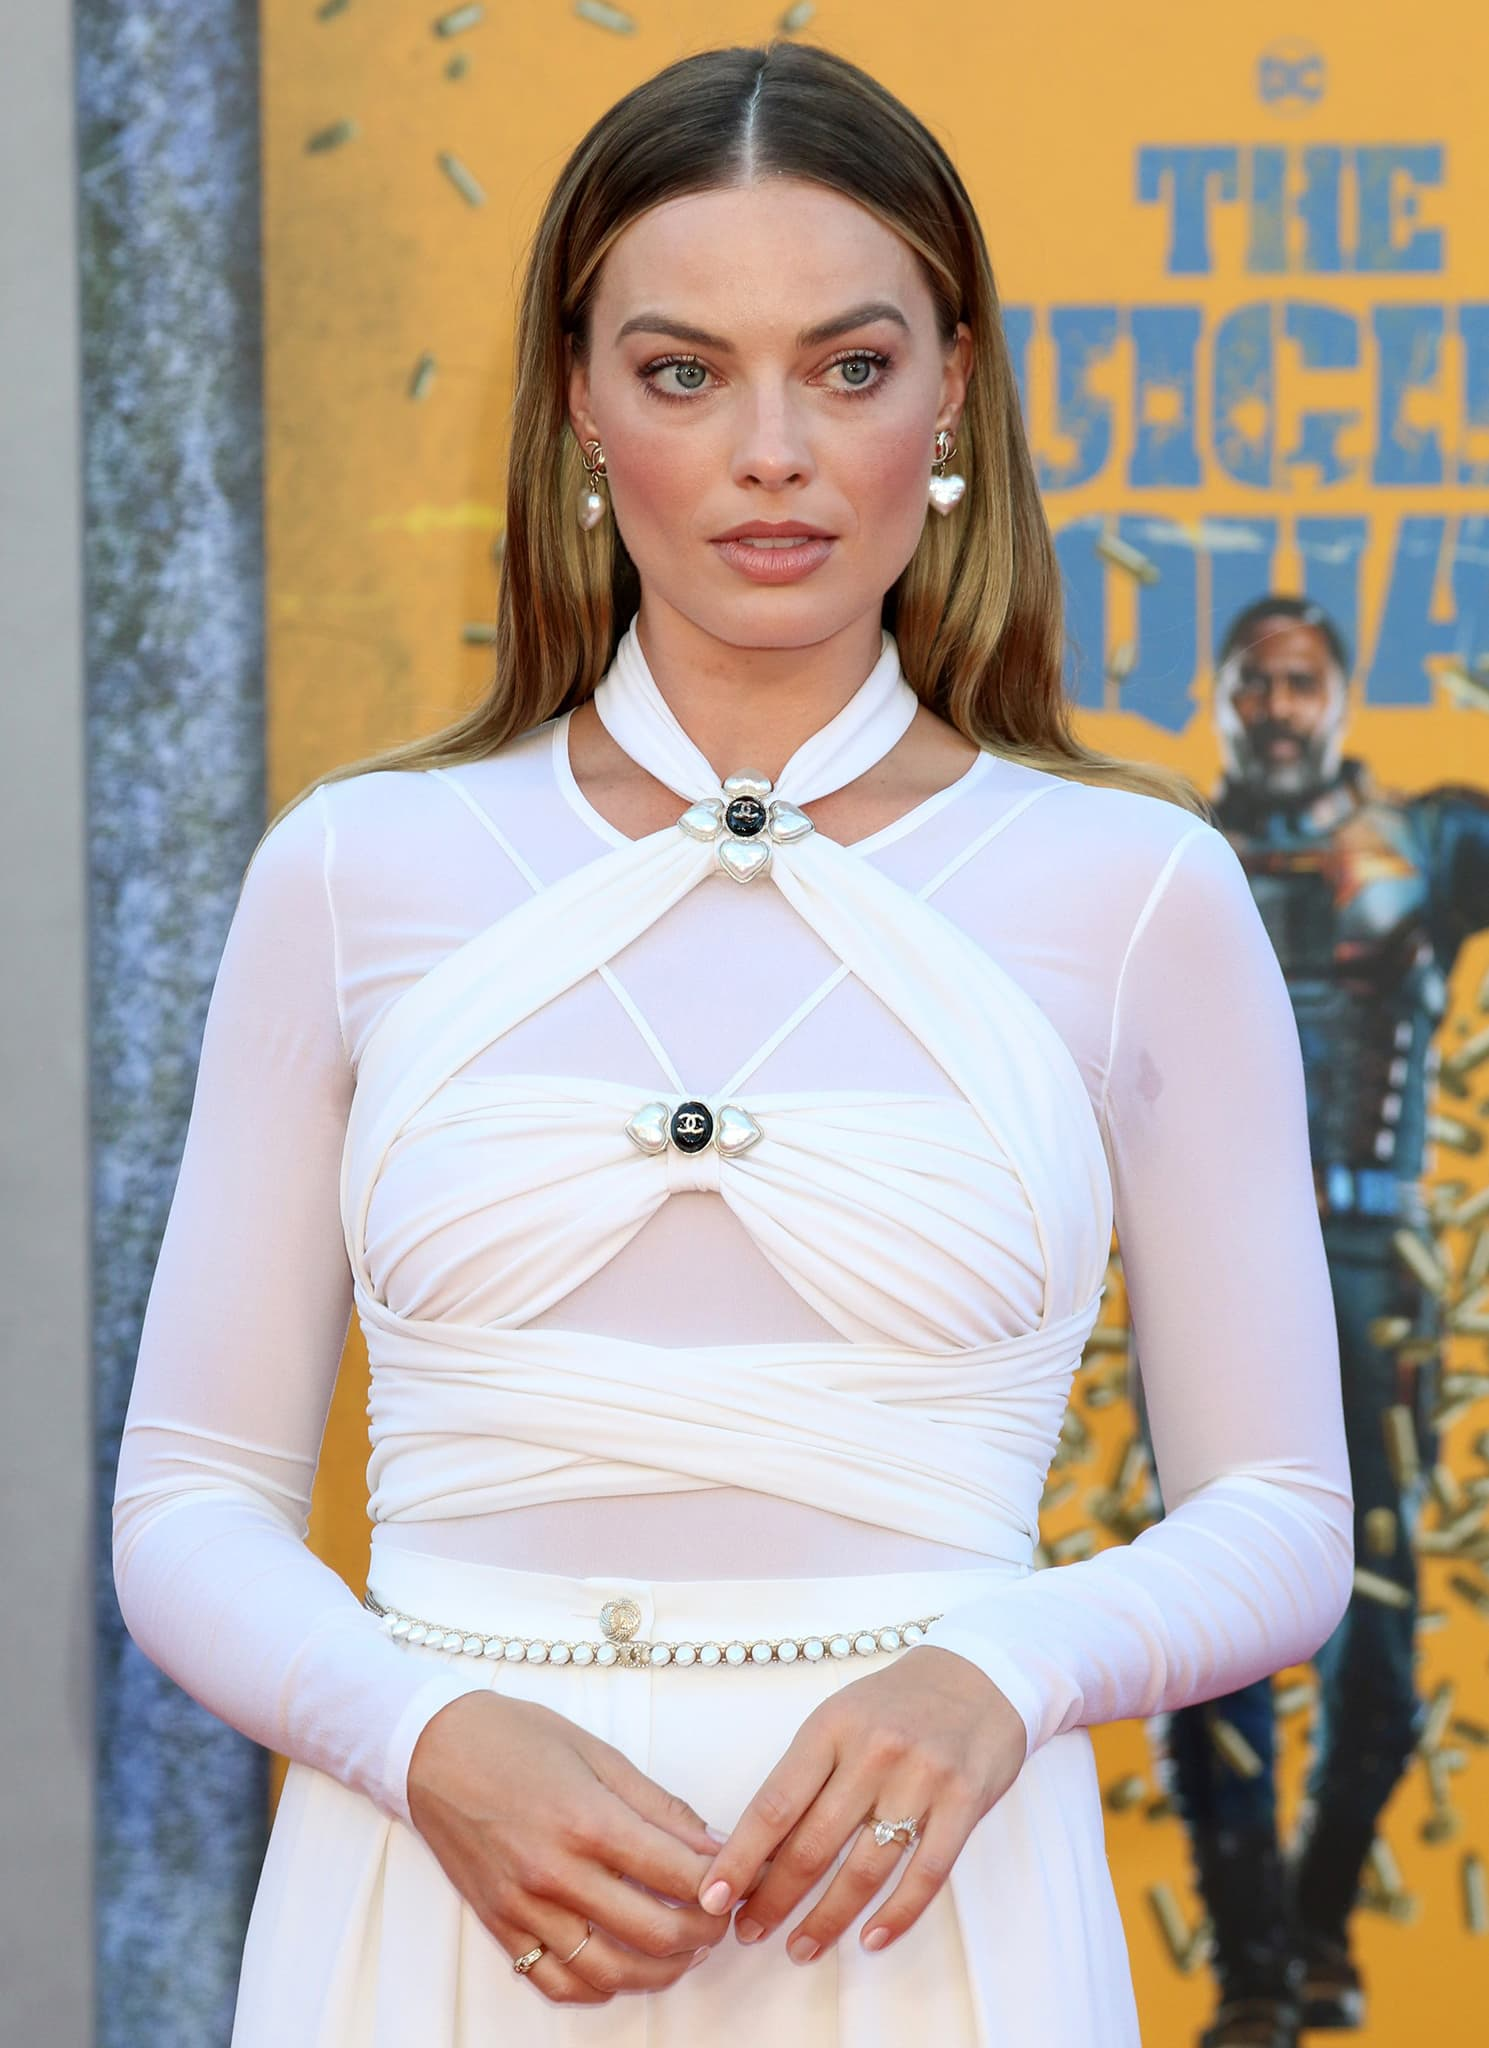 Margot Robbie wears a sheer long-sleeved top underneath a wraparound halter top with Chanel pearl emblems